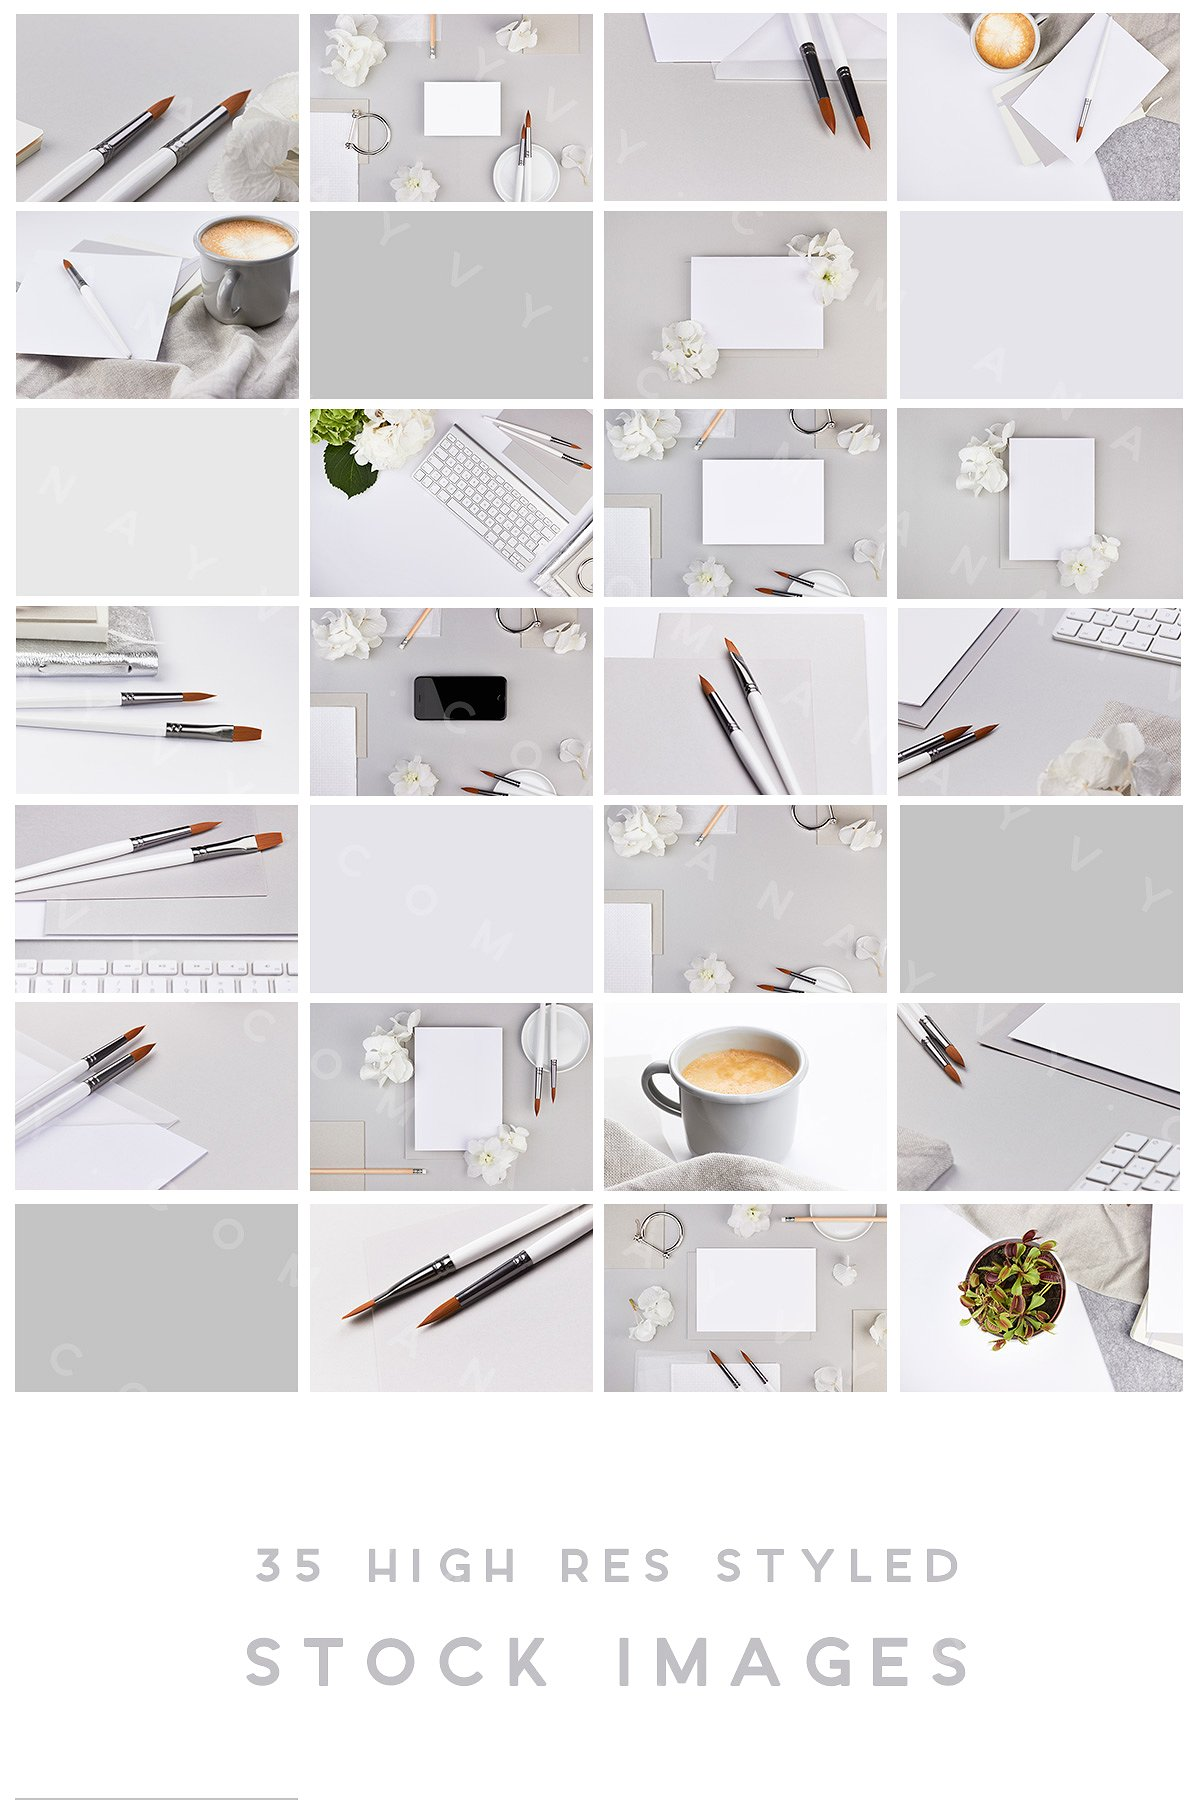 07-stock-image-mockup-collection-social-media-fashion-blogger-light-grey-sophisticated-white-silver-